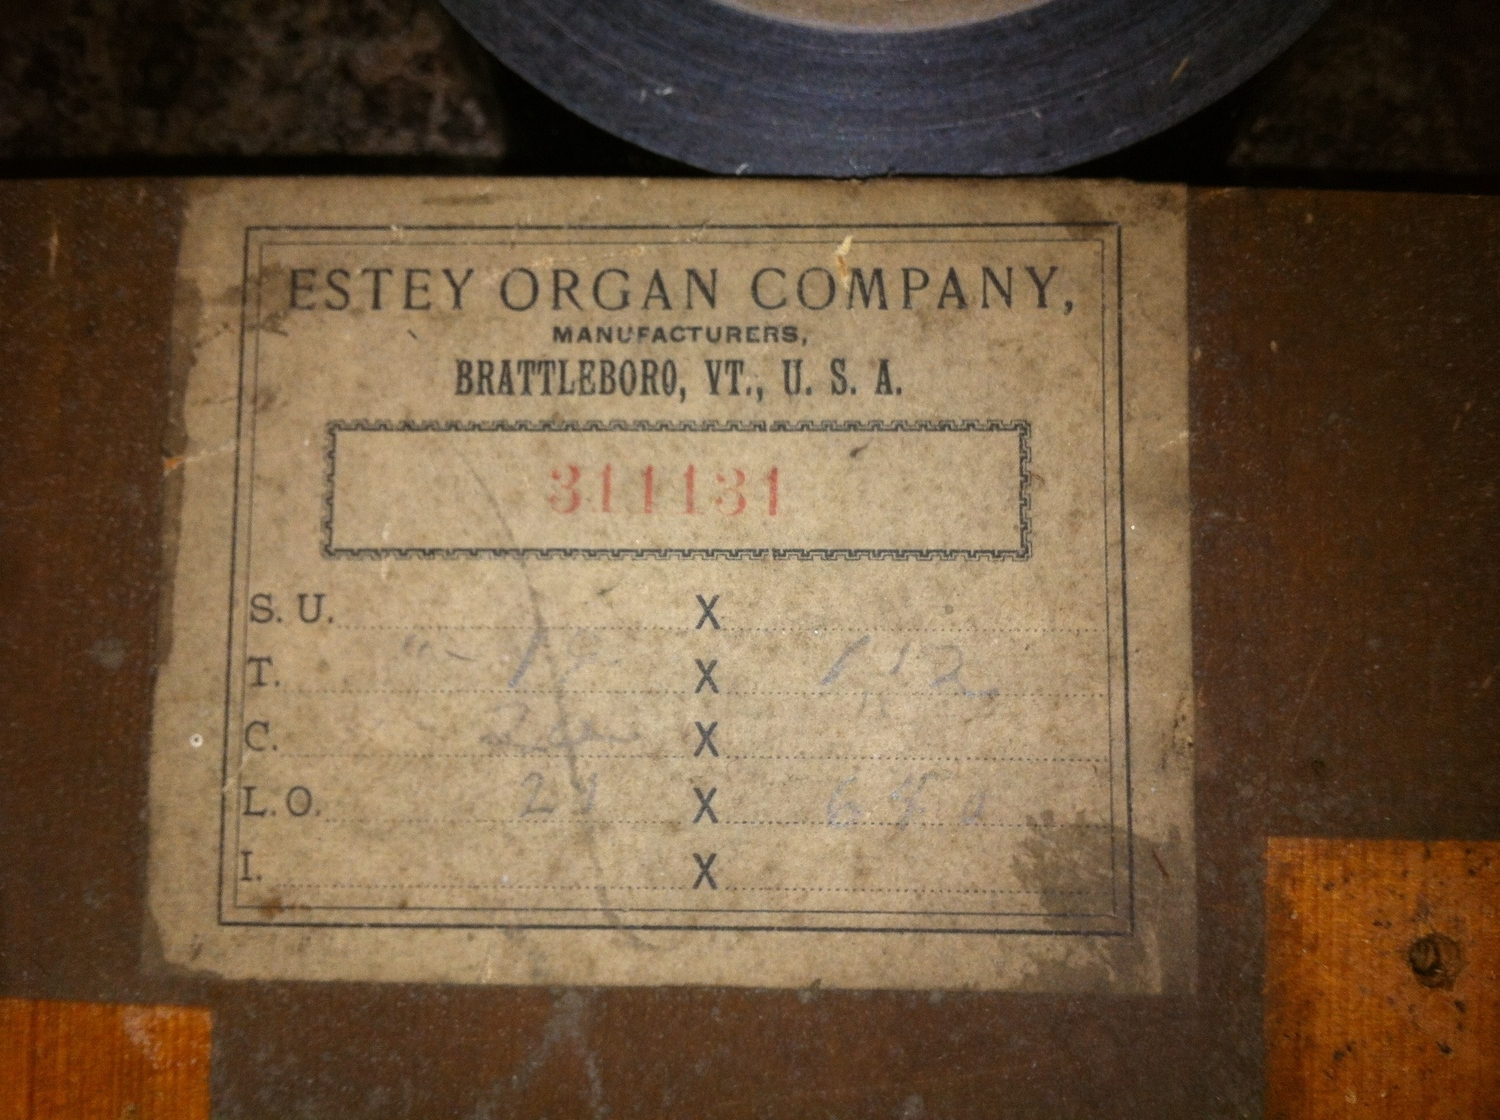 The serial number dating the organ to 1898